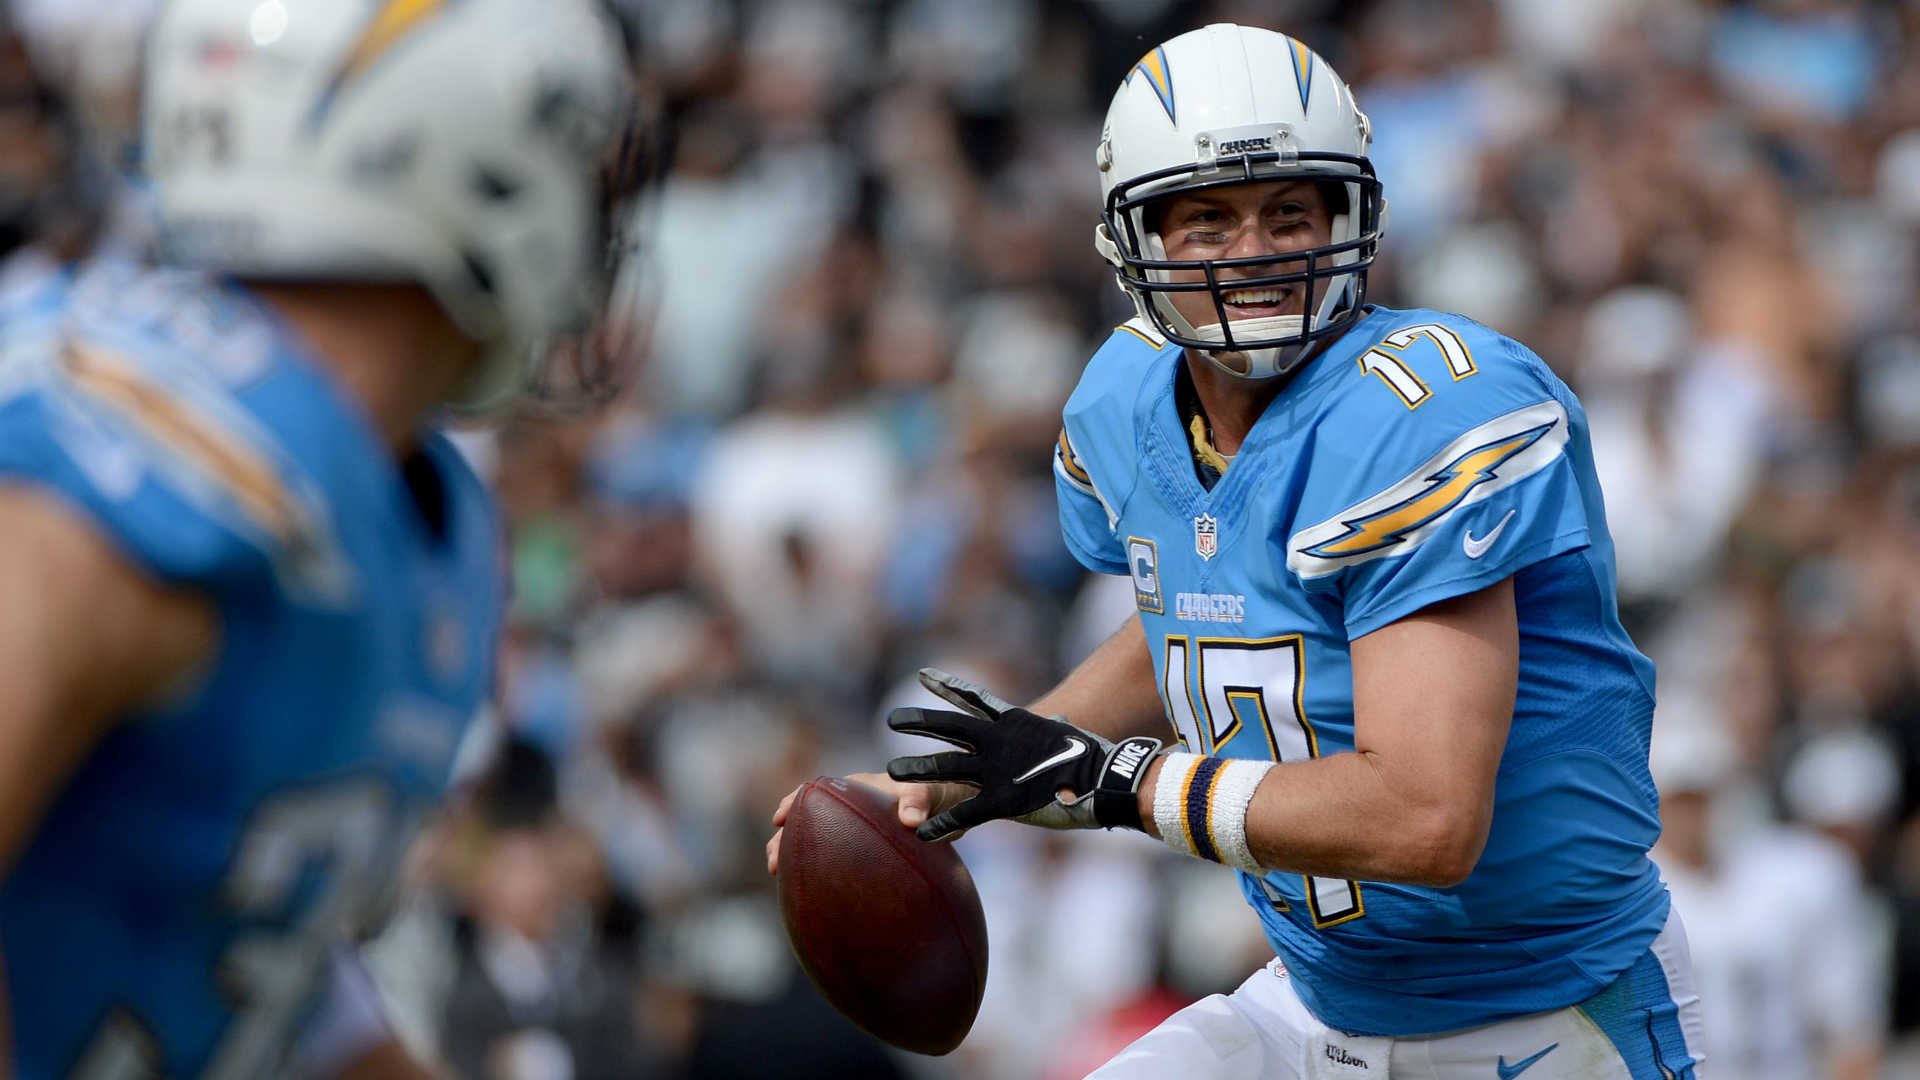 Philip Rivers shattering meaningless records one Chargers loss at